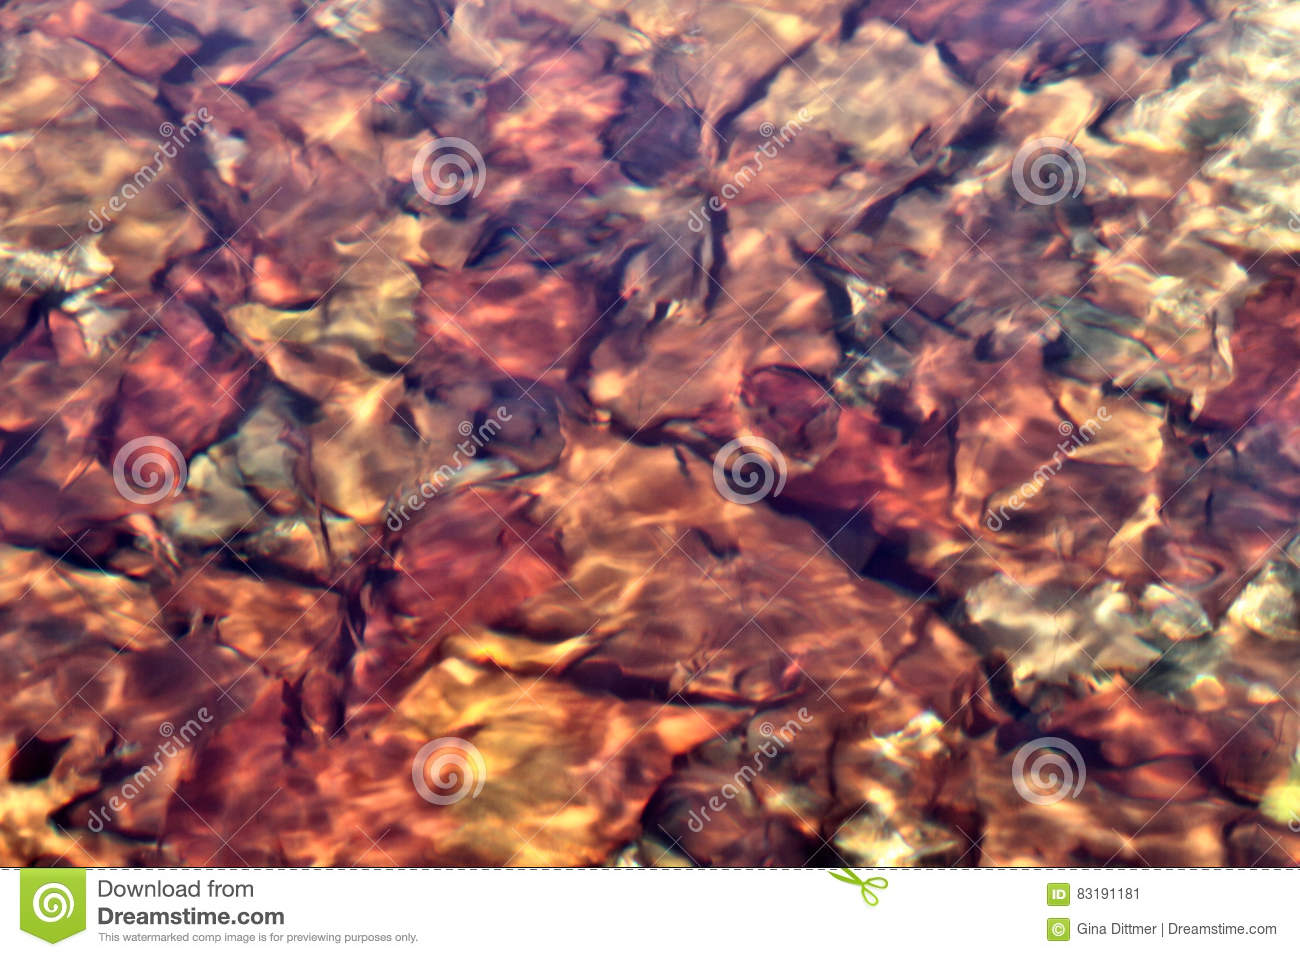 Autumn Leaves Under Slightly Rippling Water Hit by Sunlight